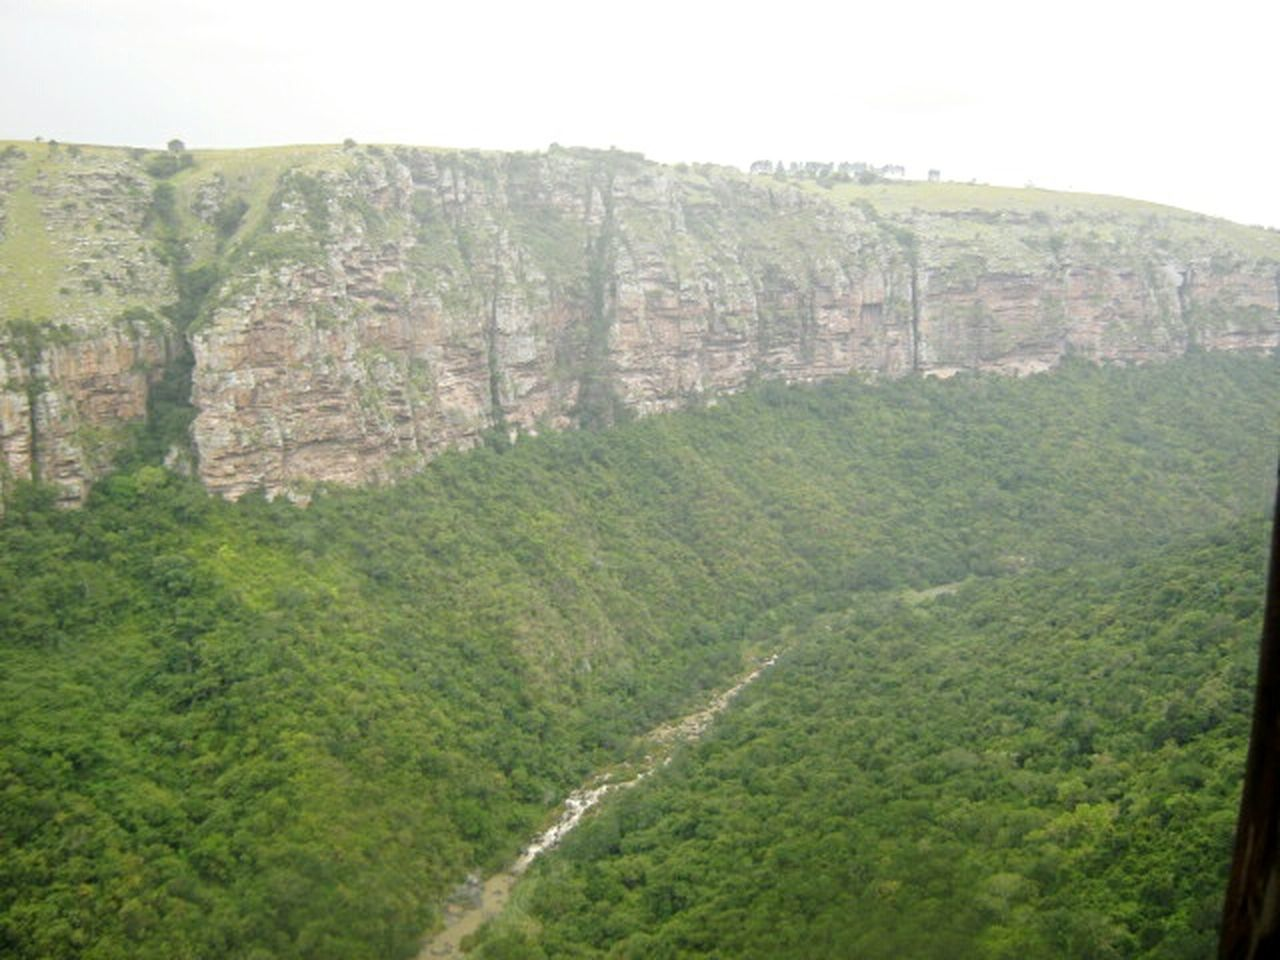 Ⓜ Photography Nature Outdoors Oribi Georg Nature Reserve South Africa Oribi Gorge Scenic View Beauty In Nature